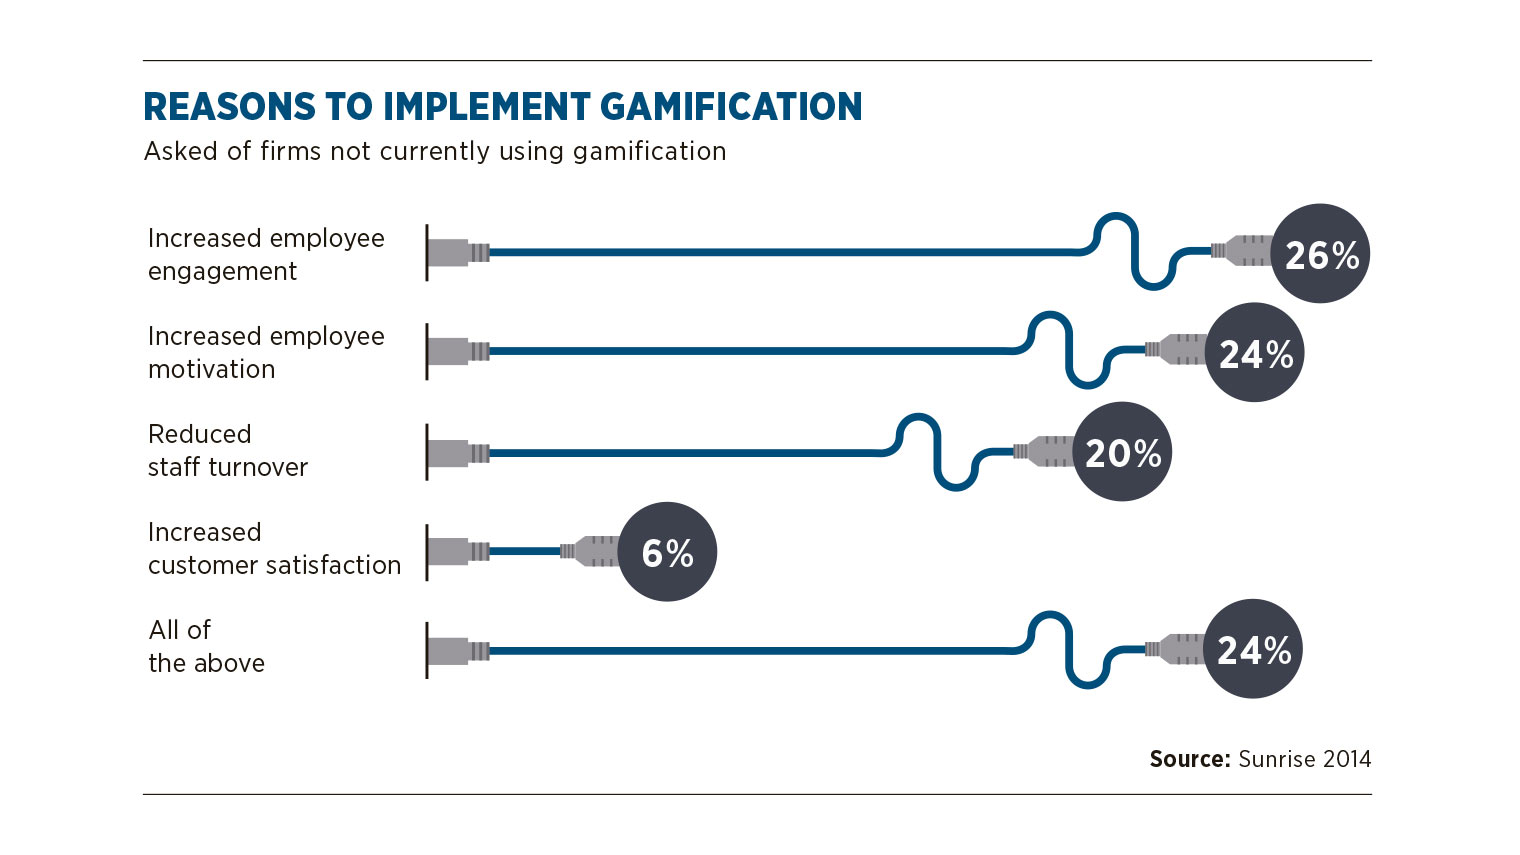 Reasons to implement gamification